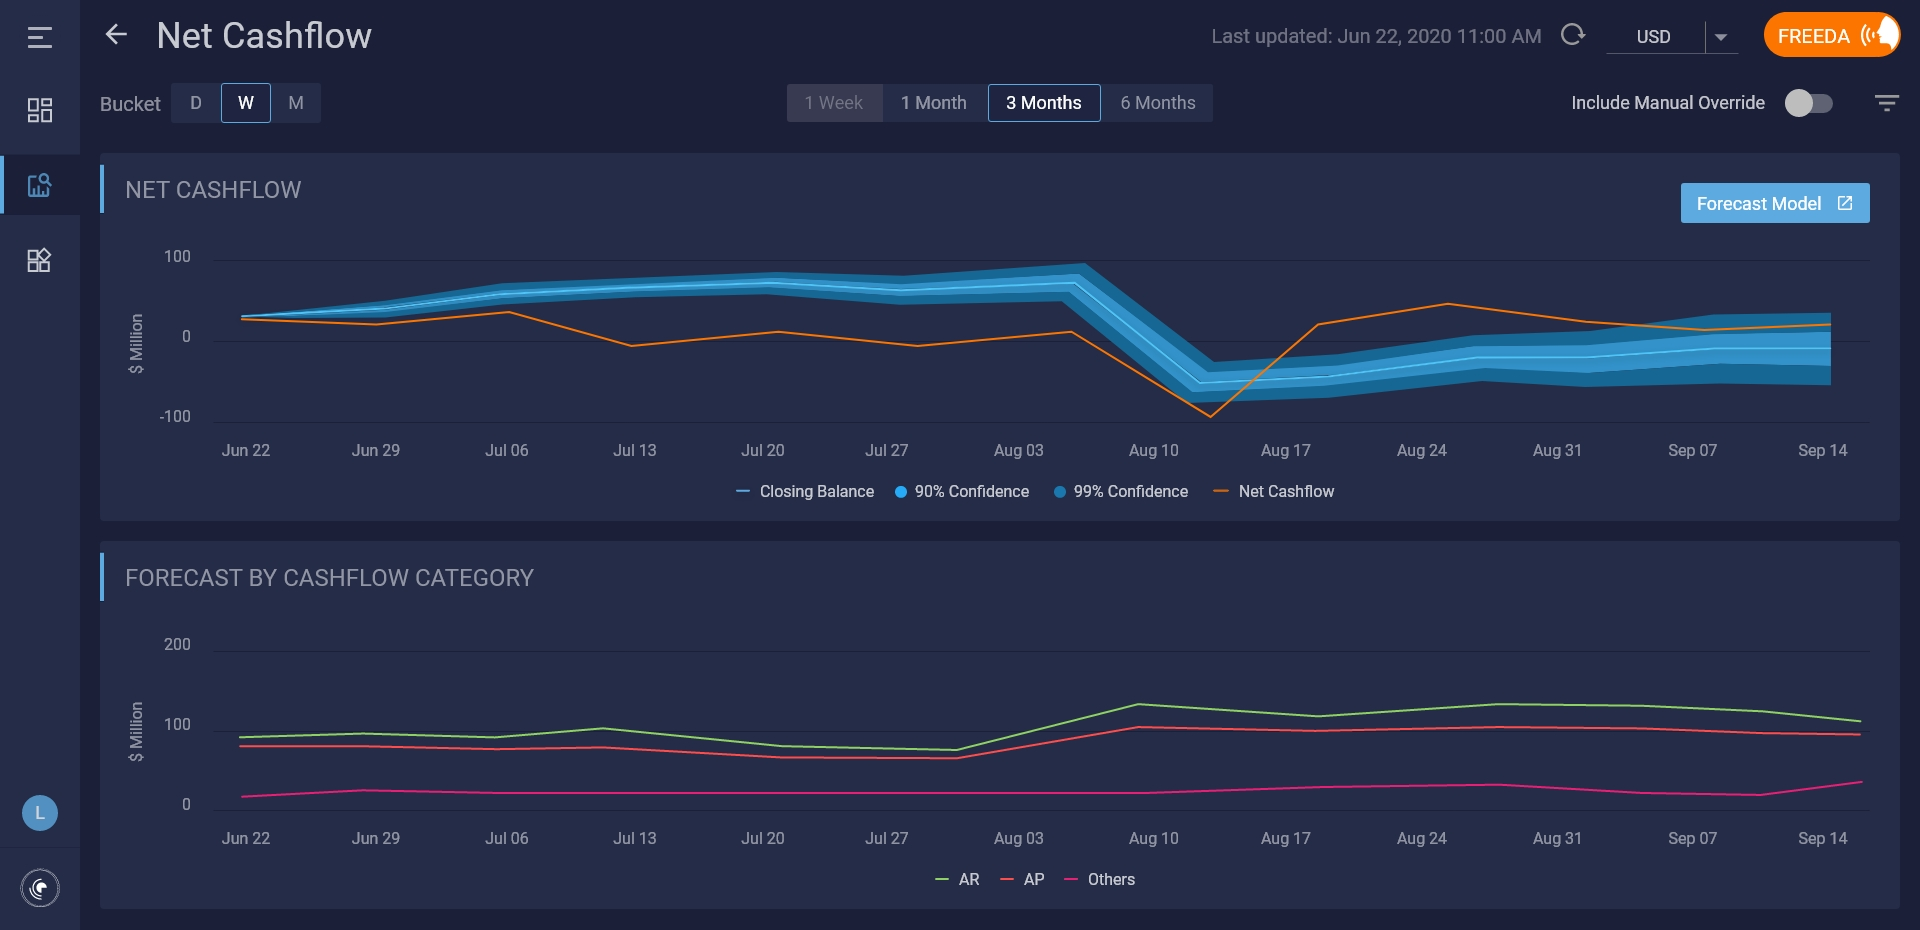 Cash Forecasting Software dashboard powered by AI